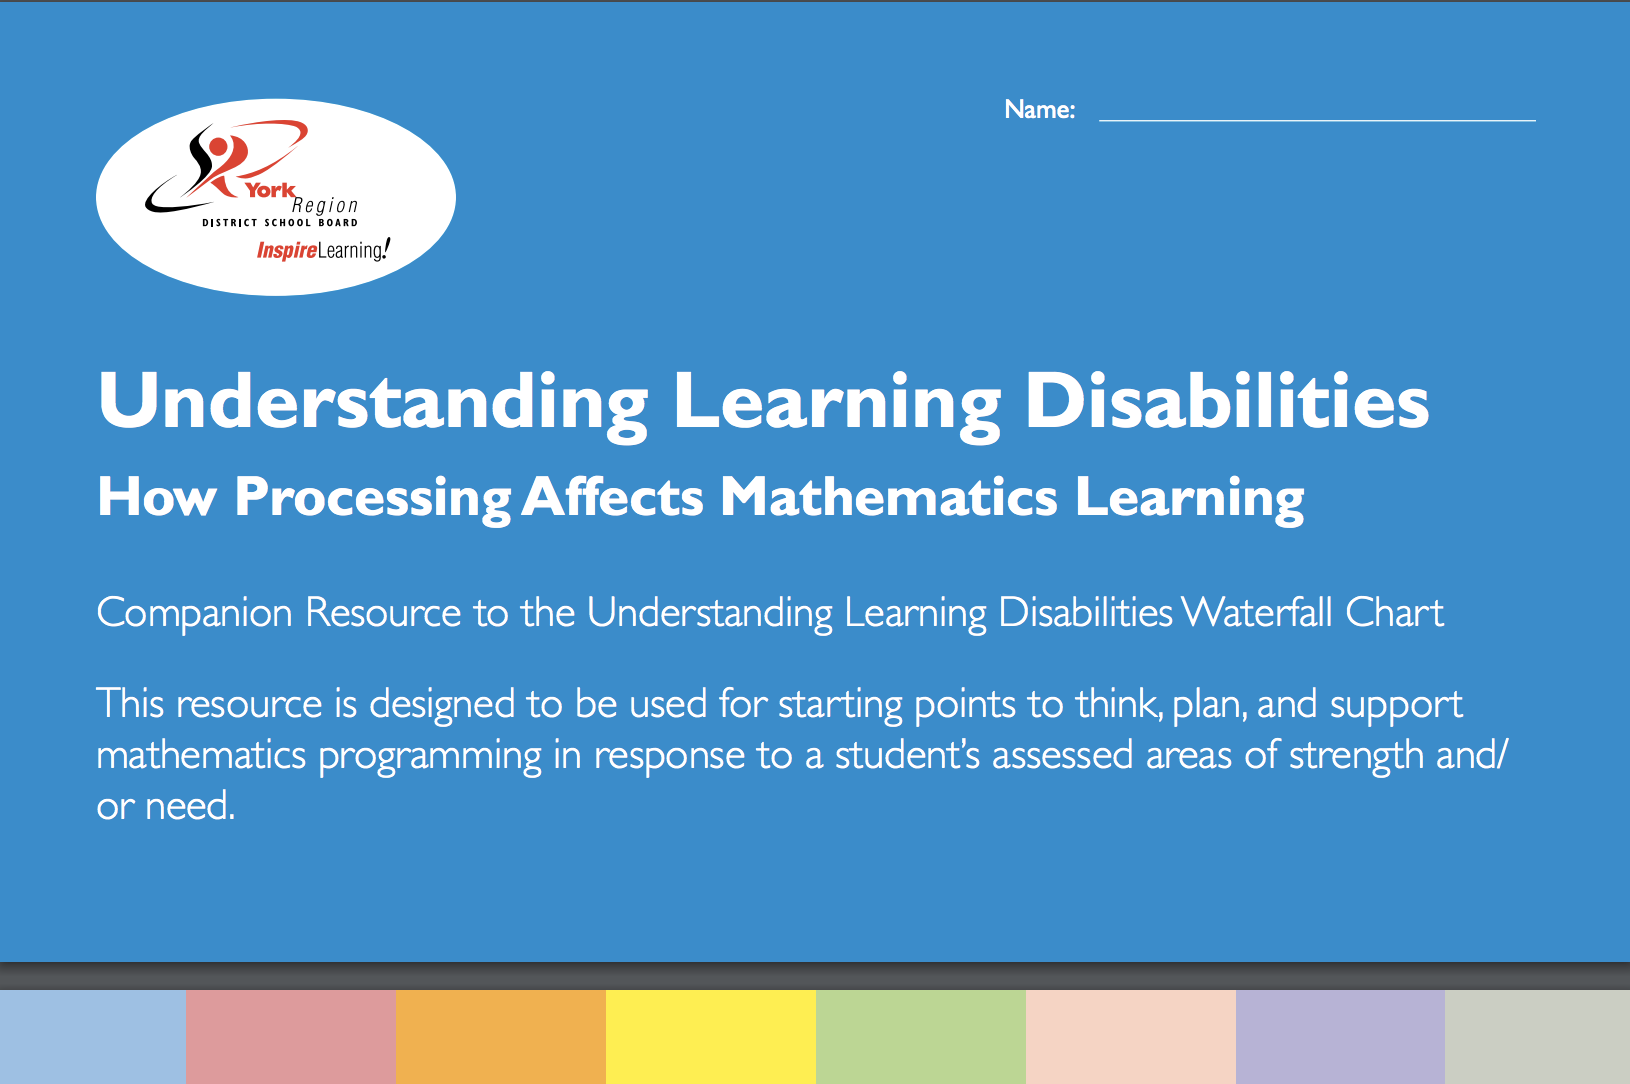 front cover from the YRDSB Understanding Learning Disabilities How Processing Affects Mathematics Learning Resource